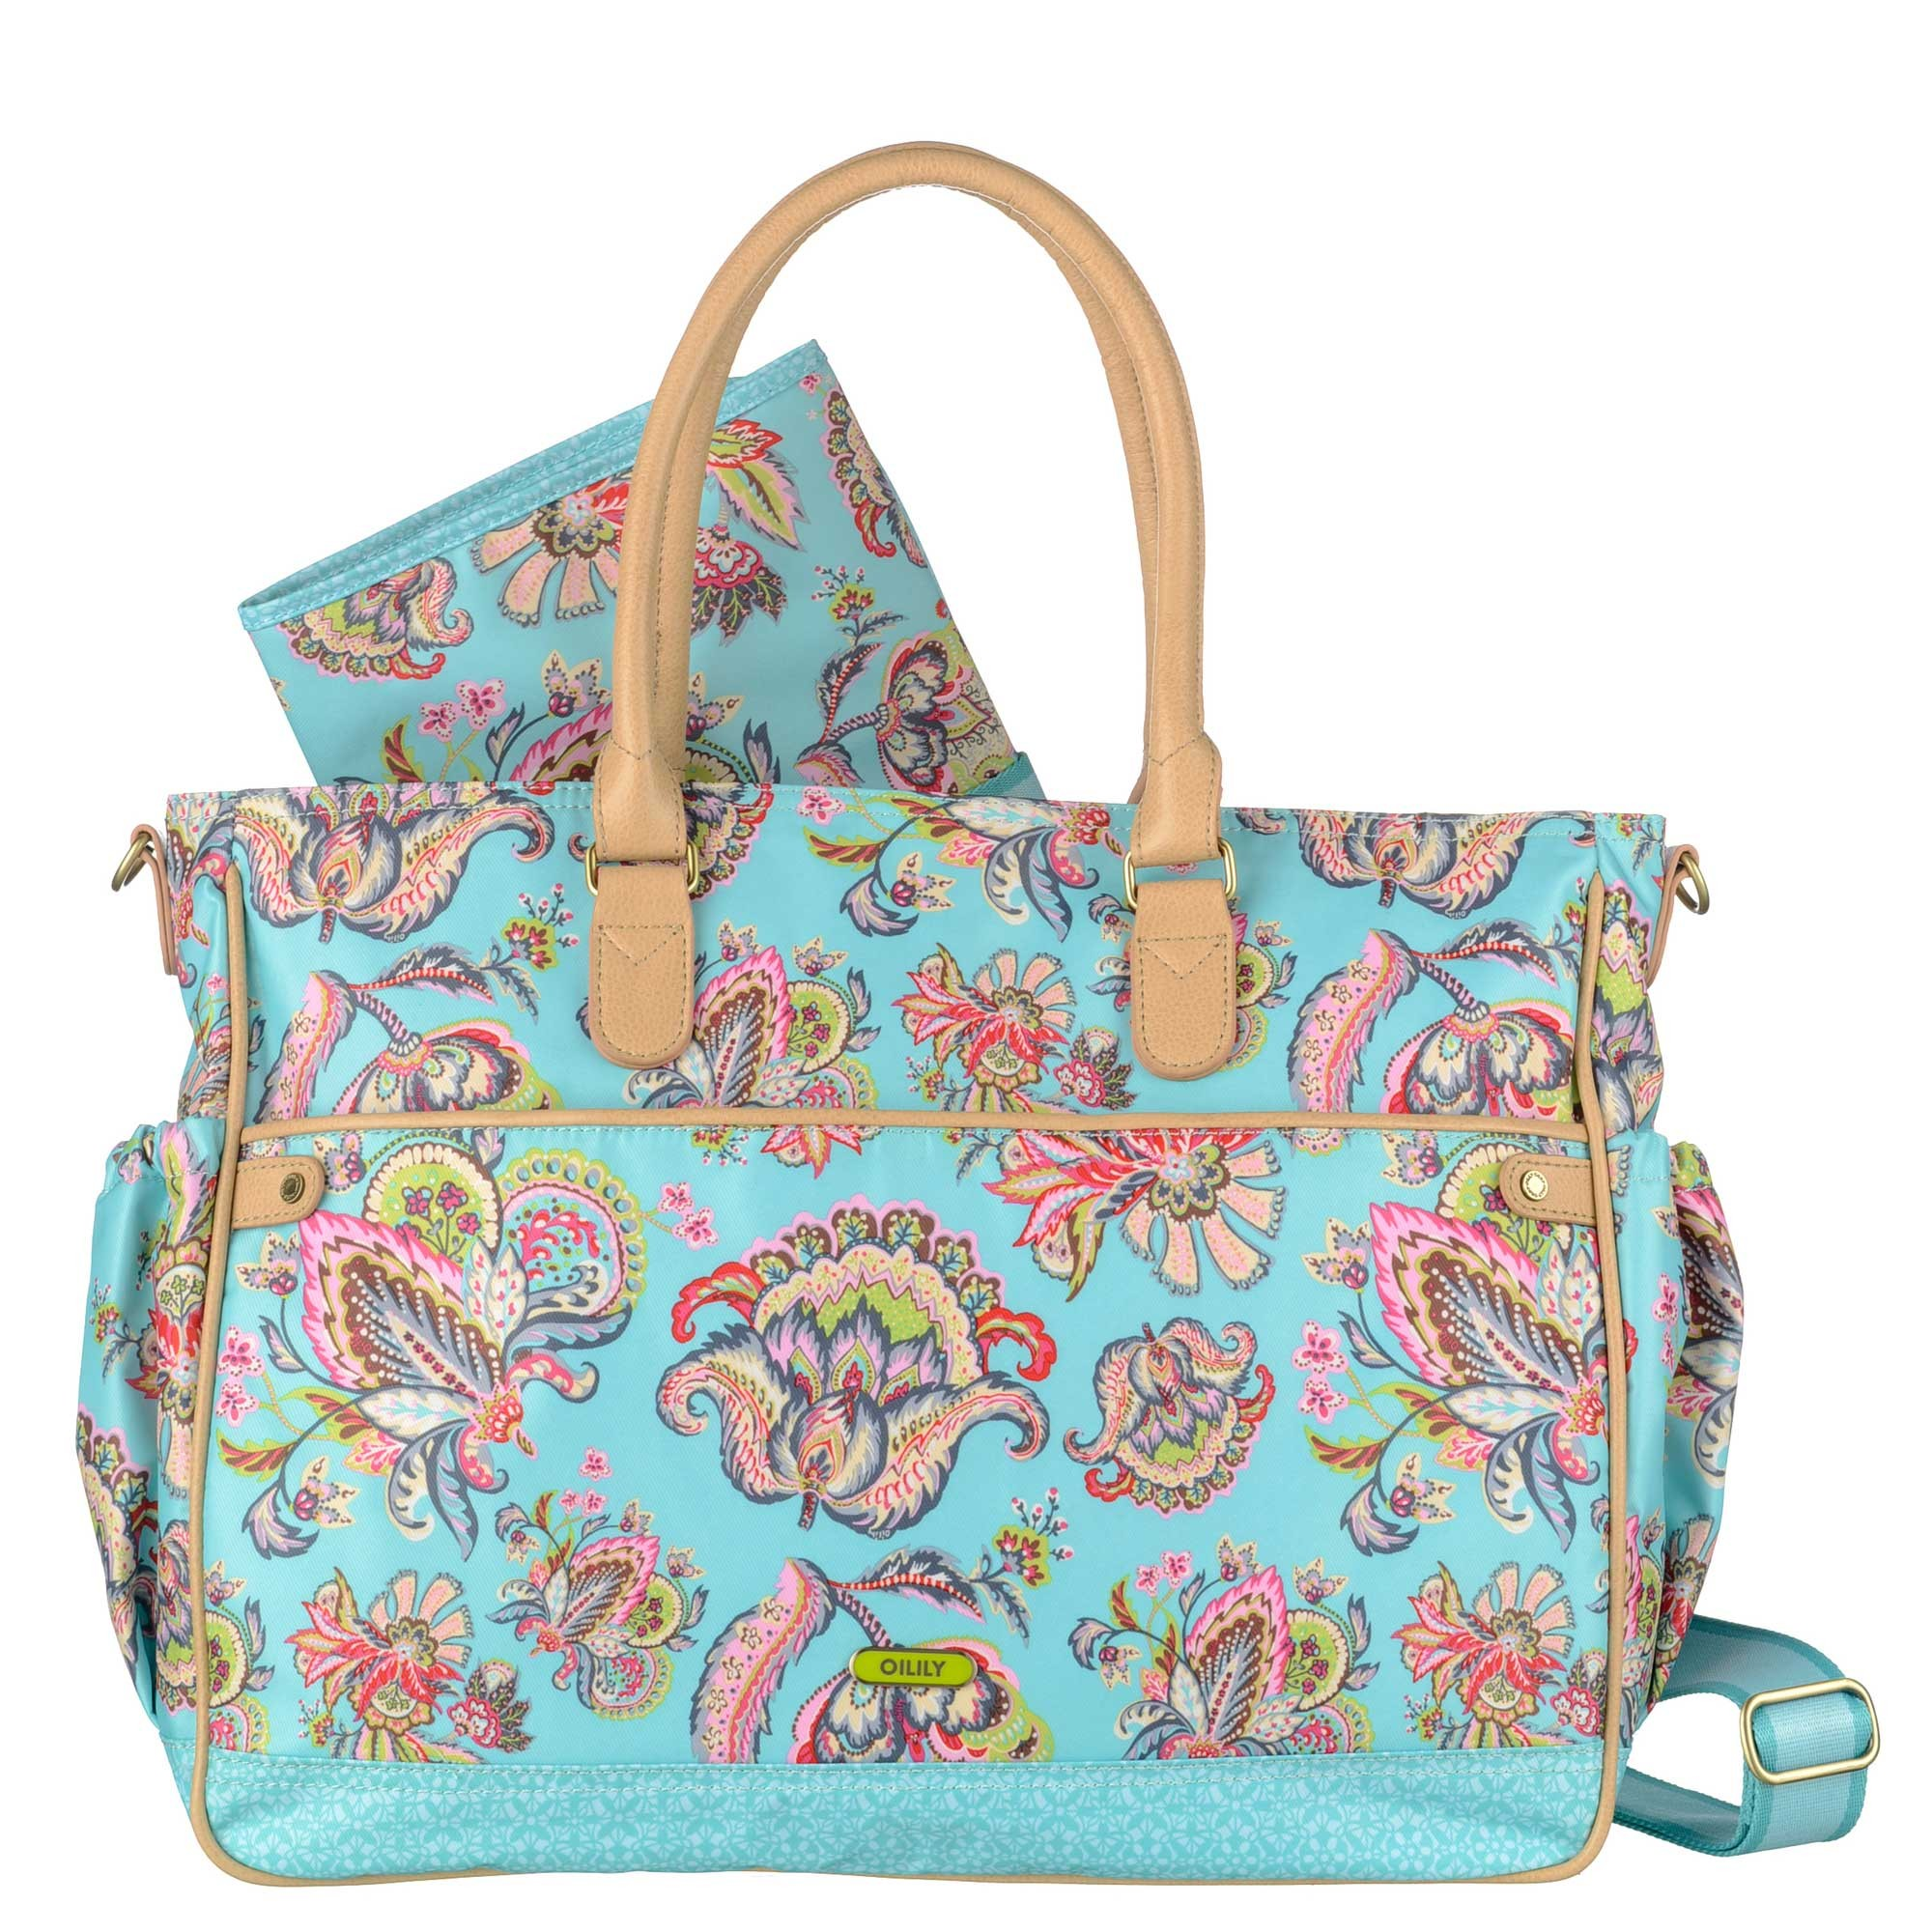 oilily summer flowers wickeltasche diaper bag baby bag. Black Bedroom Furniture Sets. Home Design Ideas